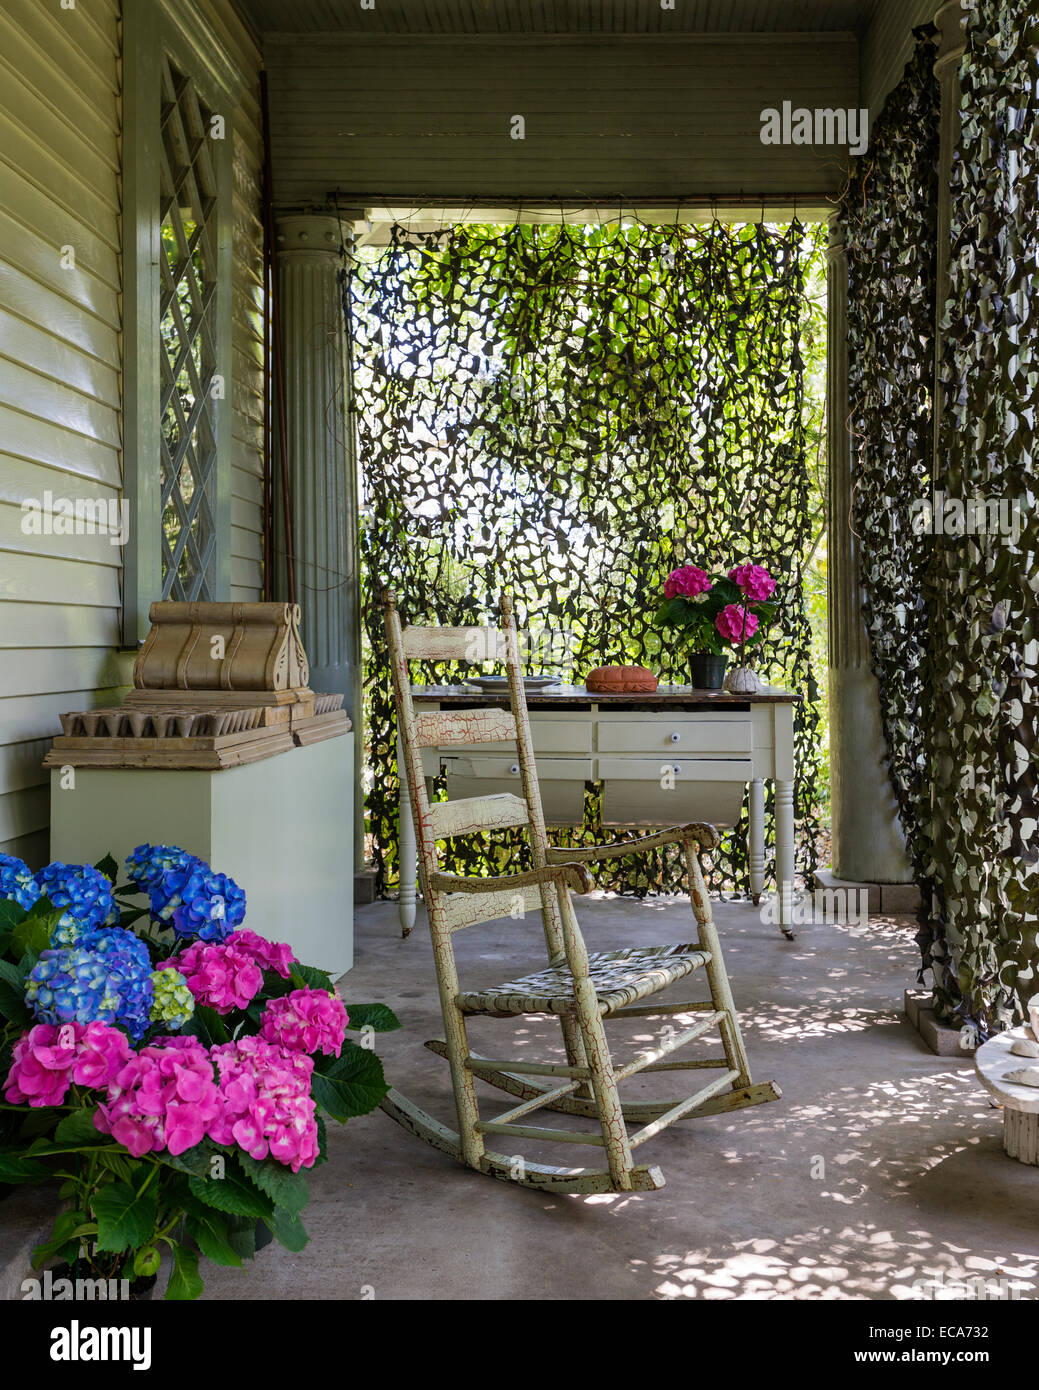 Antique texan rocking chair on porch with potted hydrangeas - Stock Image